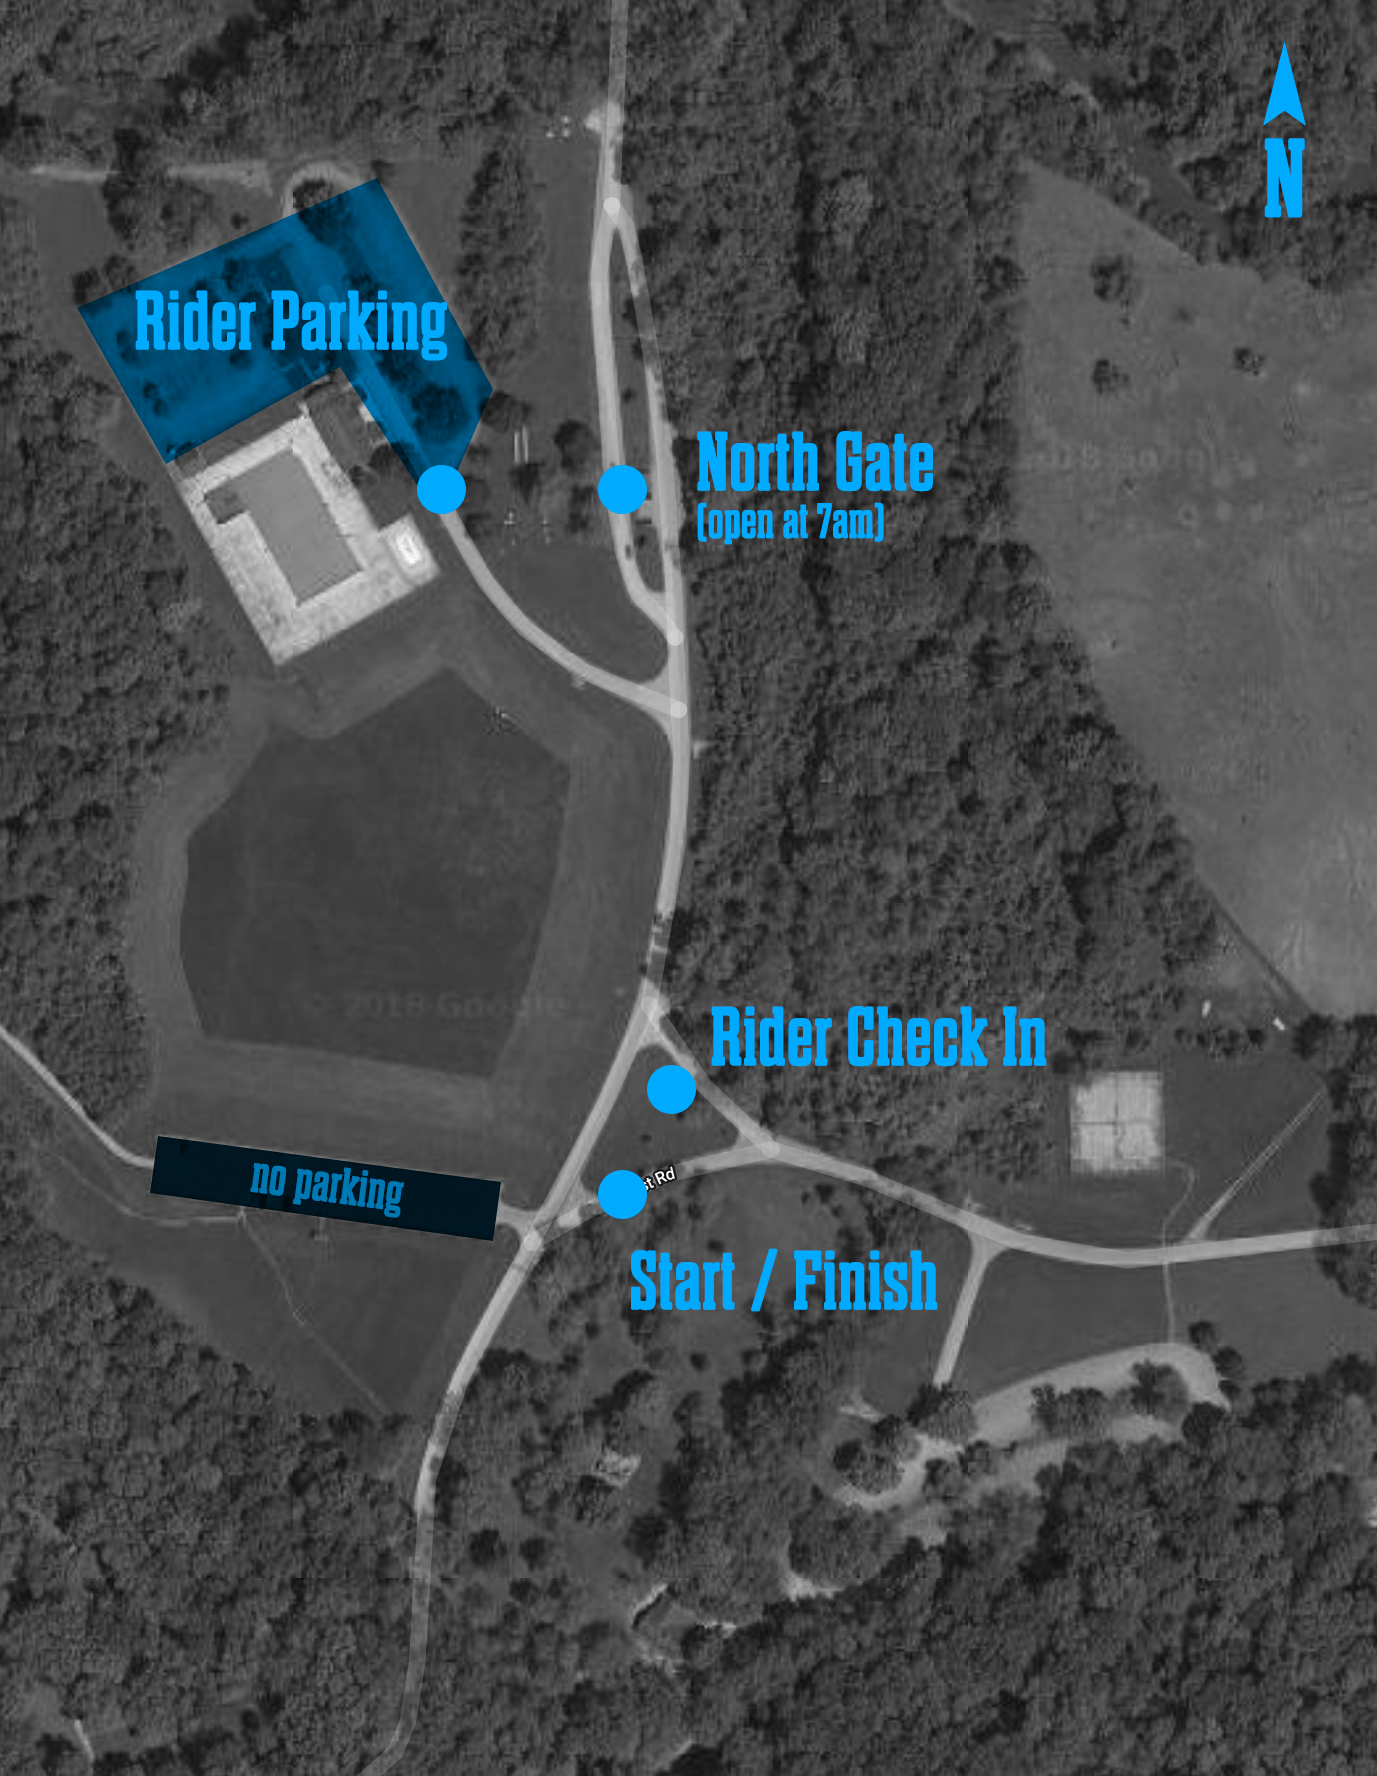 Check in and parking map